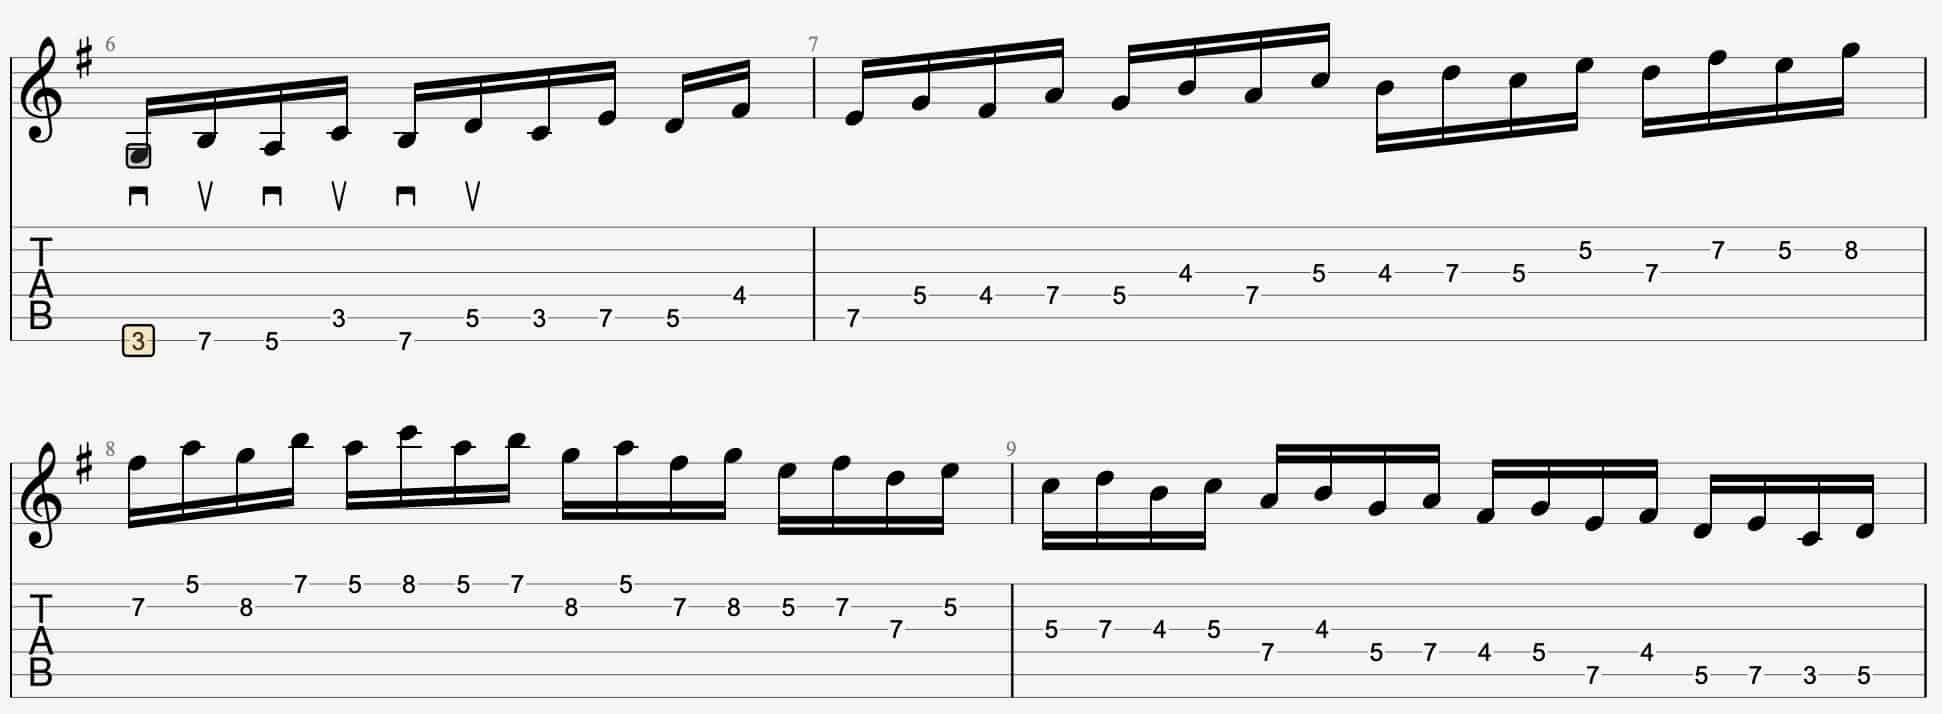 Alternate Picking in 3rds